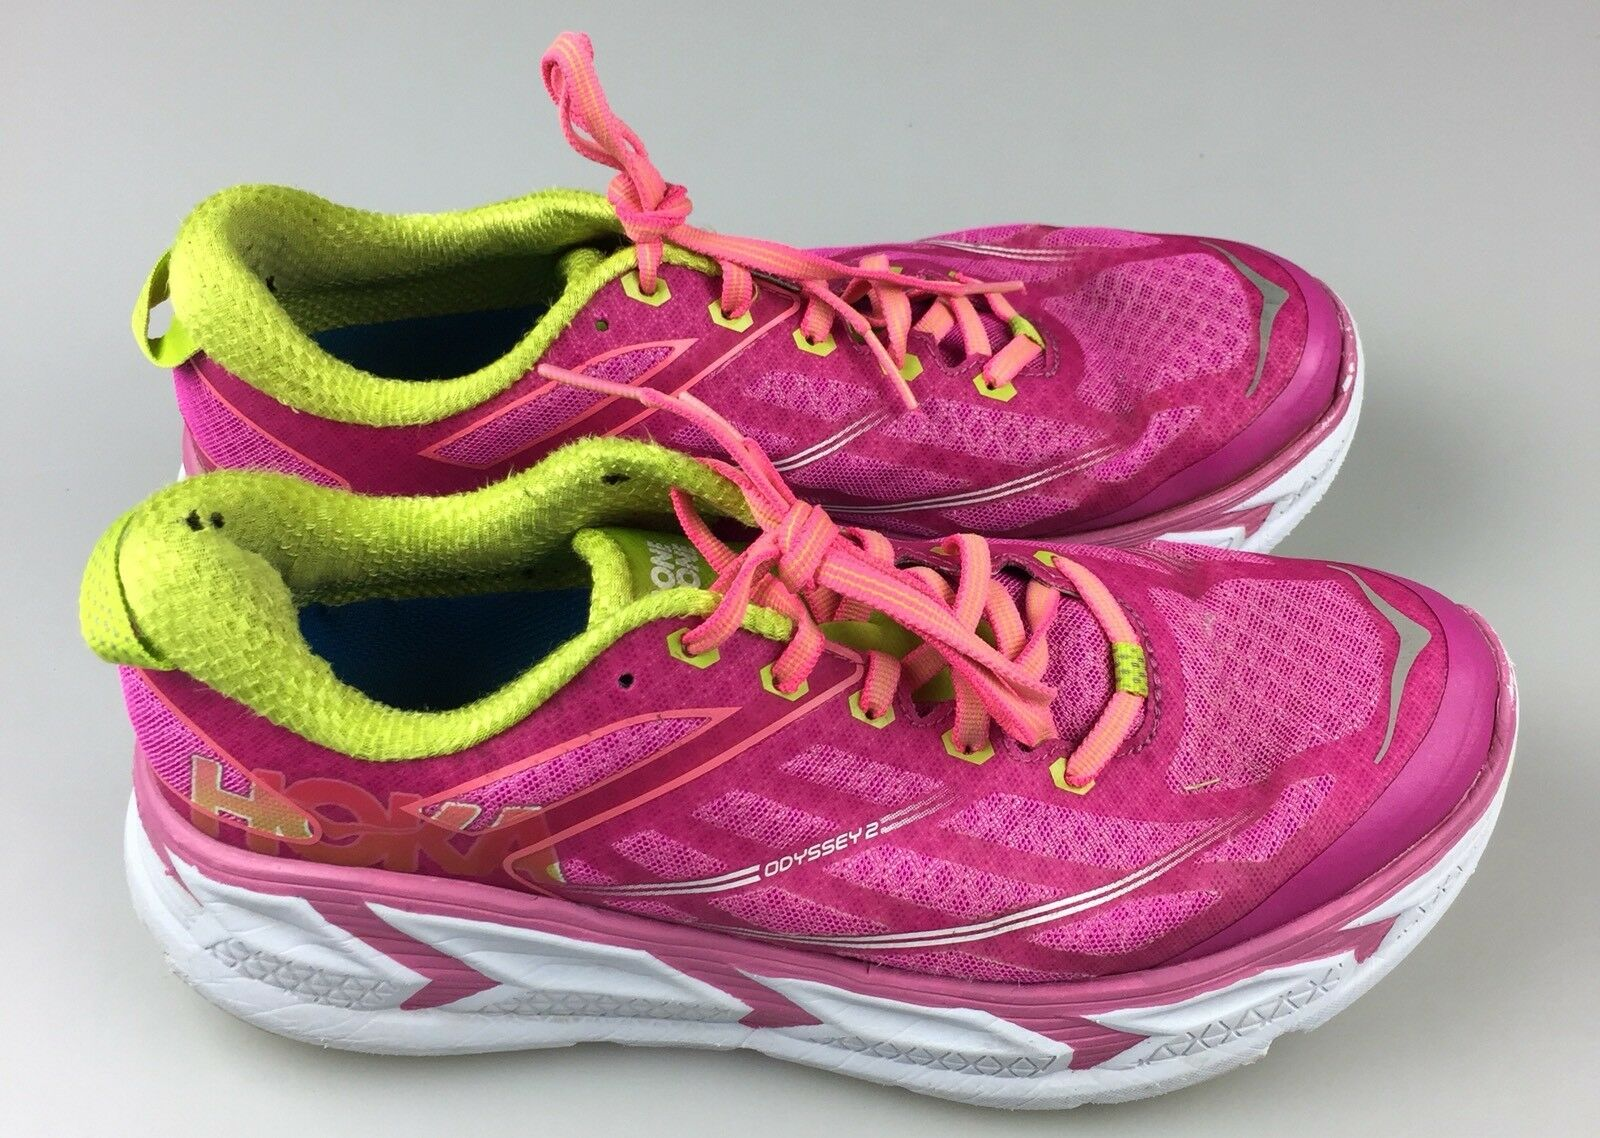 Women's Size 9 Hoka One One Pink Odyssey 2 Running Training Athletic Shoes